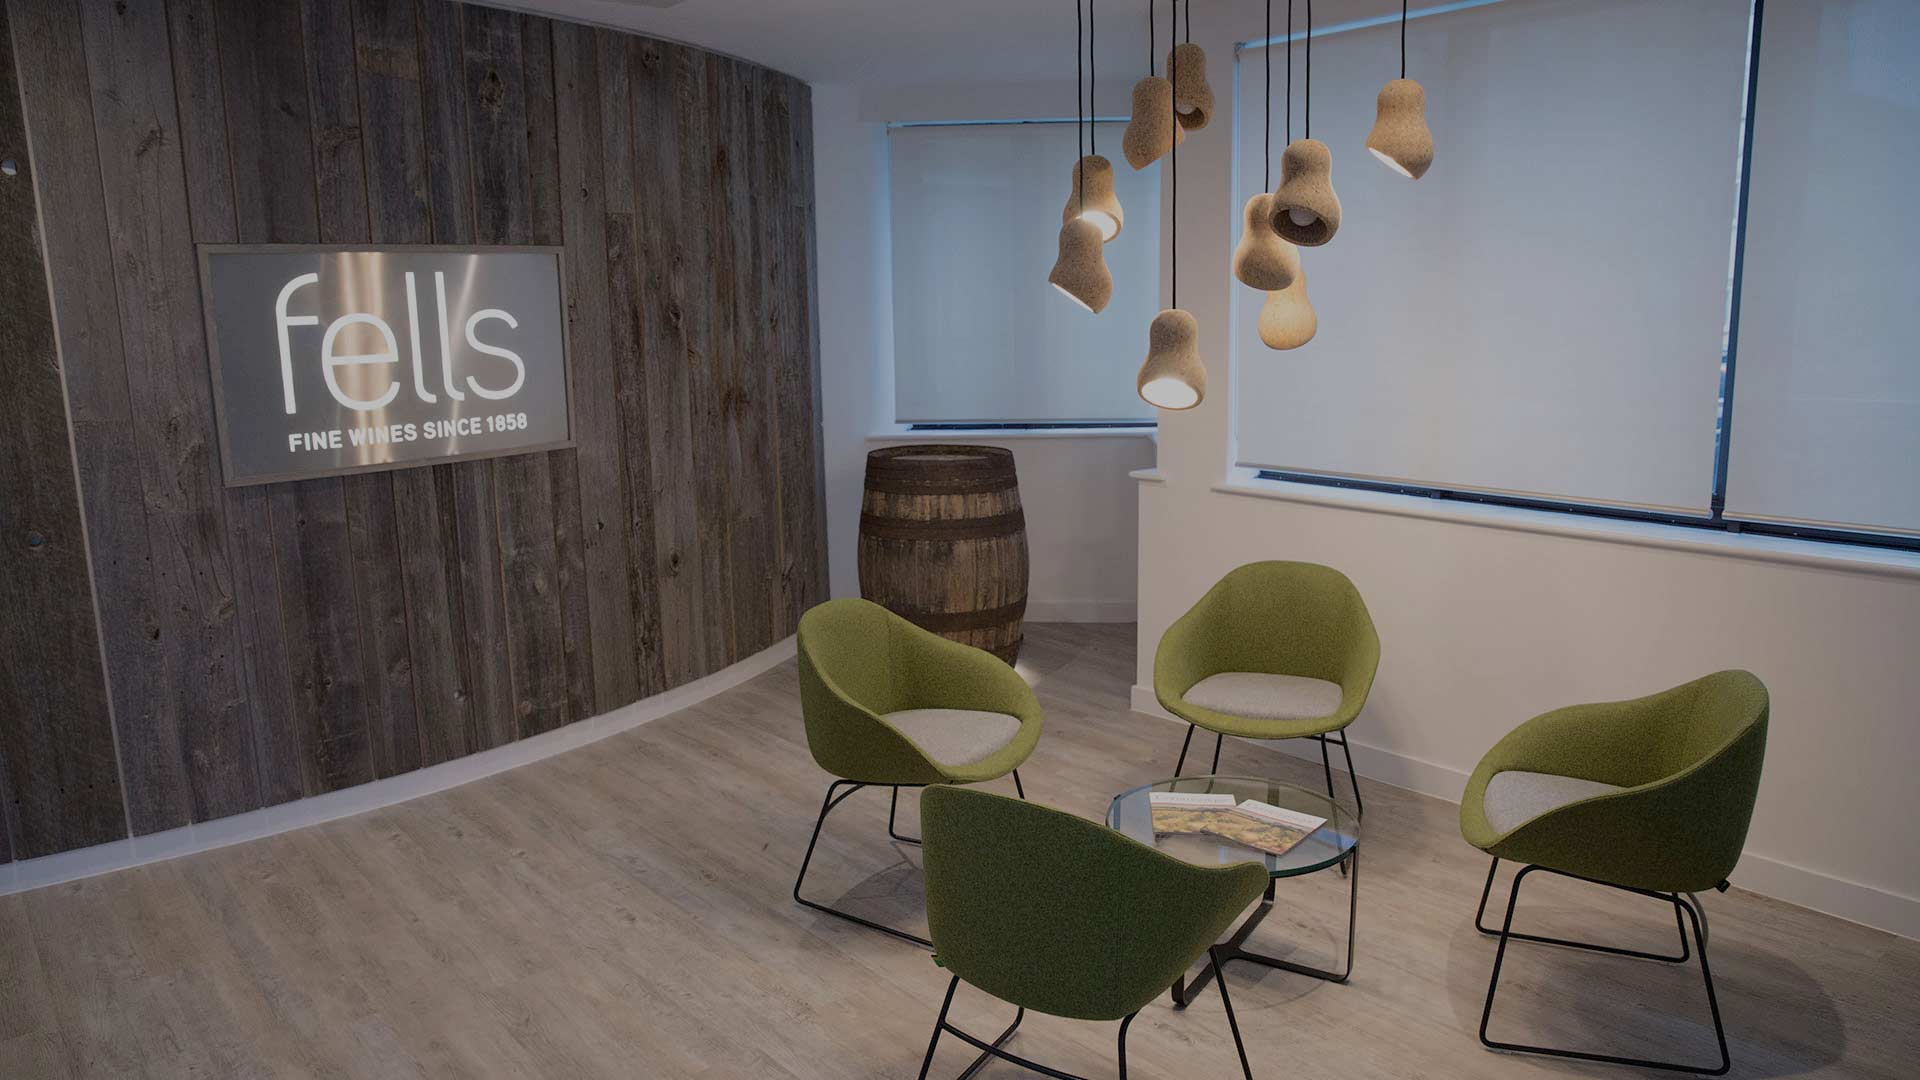 Fells-Fine-Wines-Bulb-Interiors-header